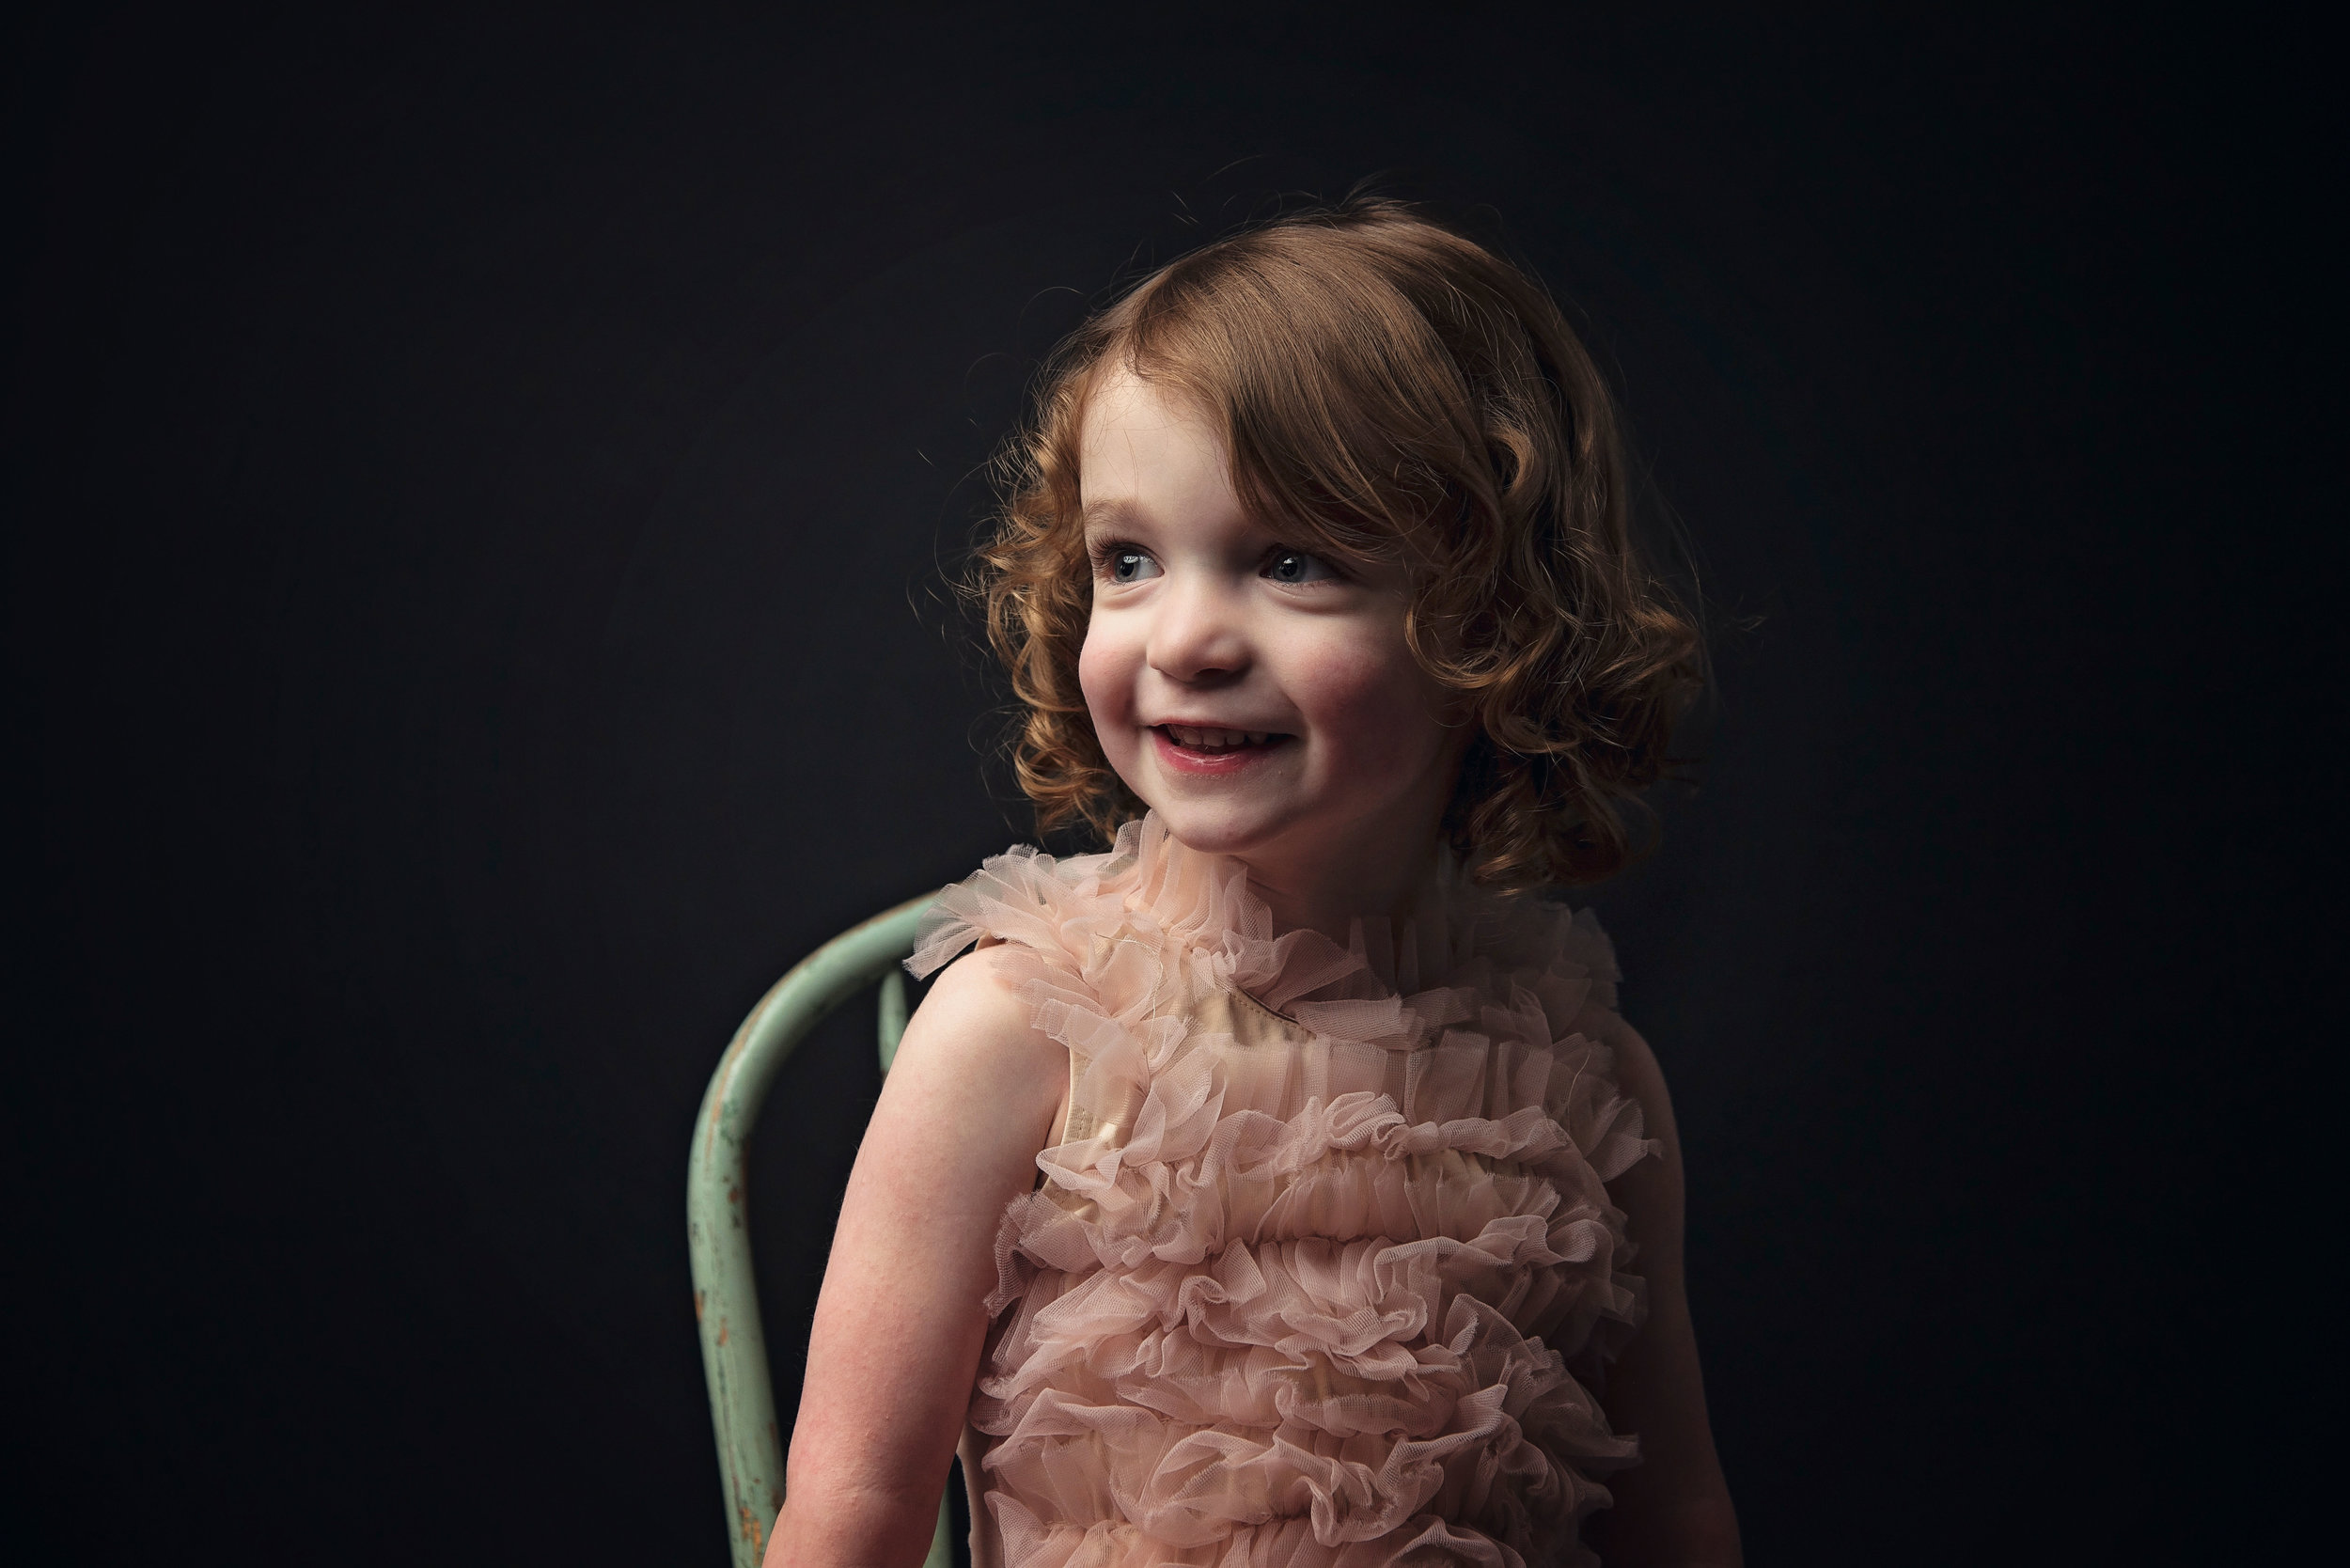 Young Girl in Pink Dress on Black Background Remember When Portraits Cincinnati Ohio